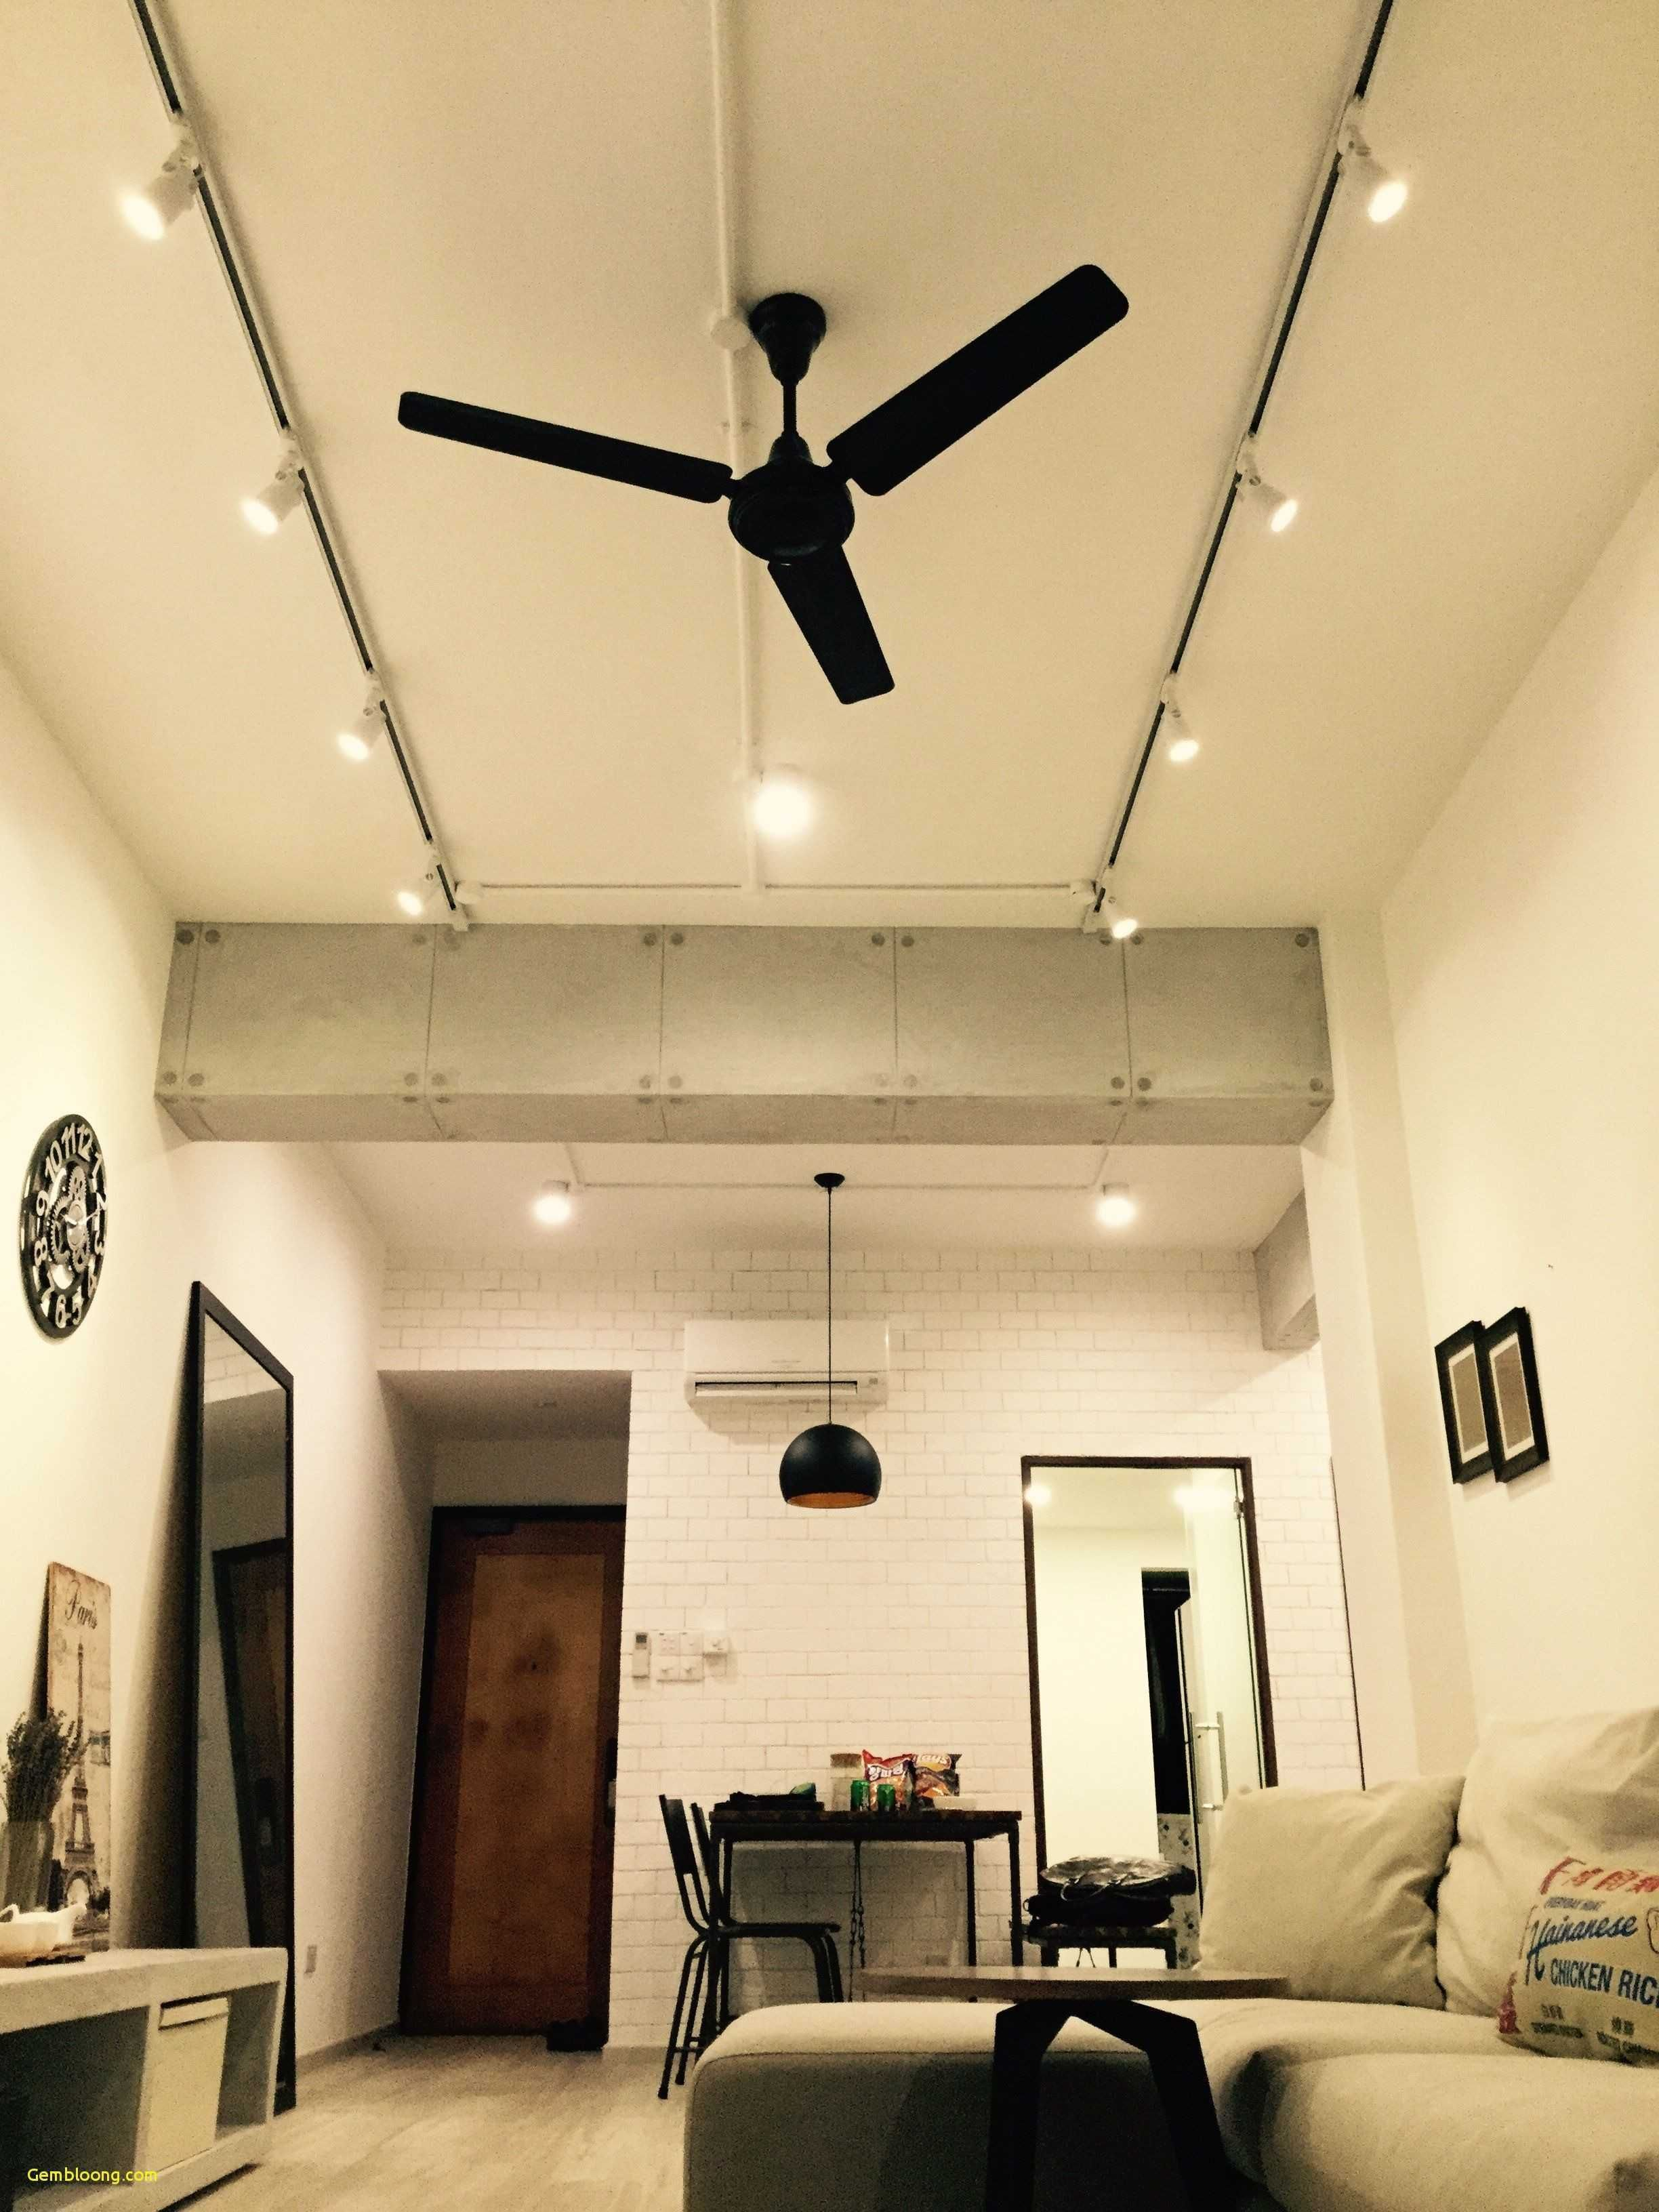 Kitchen Ceiling Fans Cool And Classic Design Of Ceiling Fans In 2020 Living Room Lighting Ceiling Lights Living Room Ceiling Fan In Kitchen